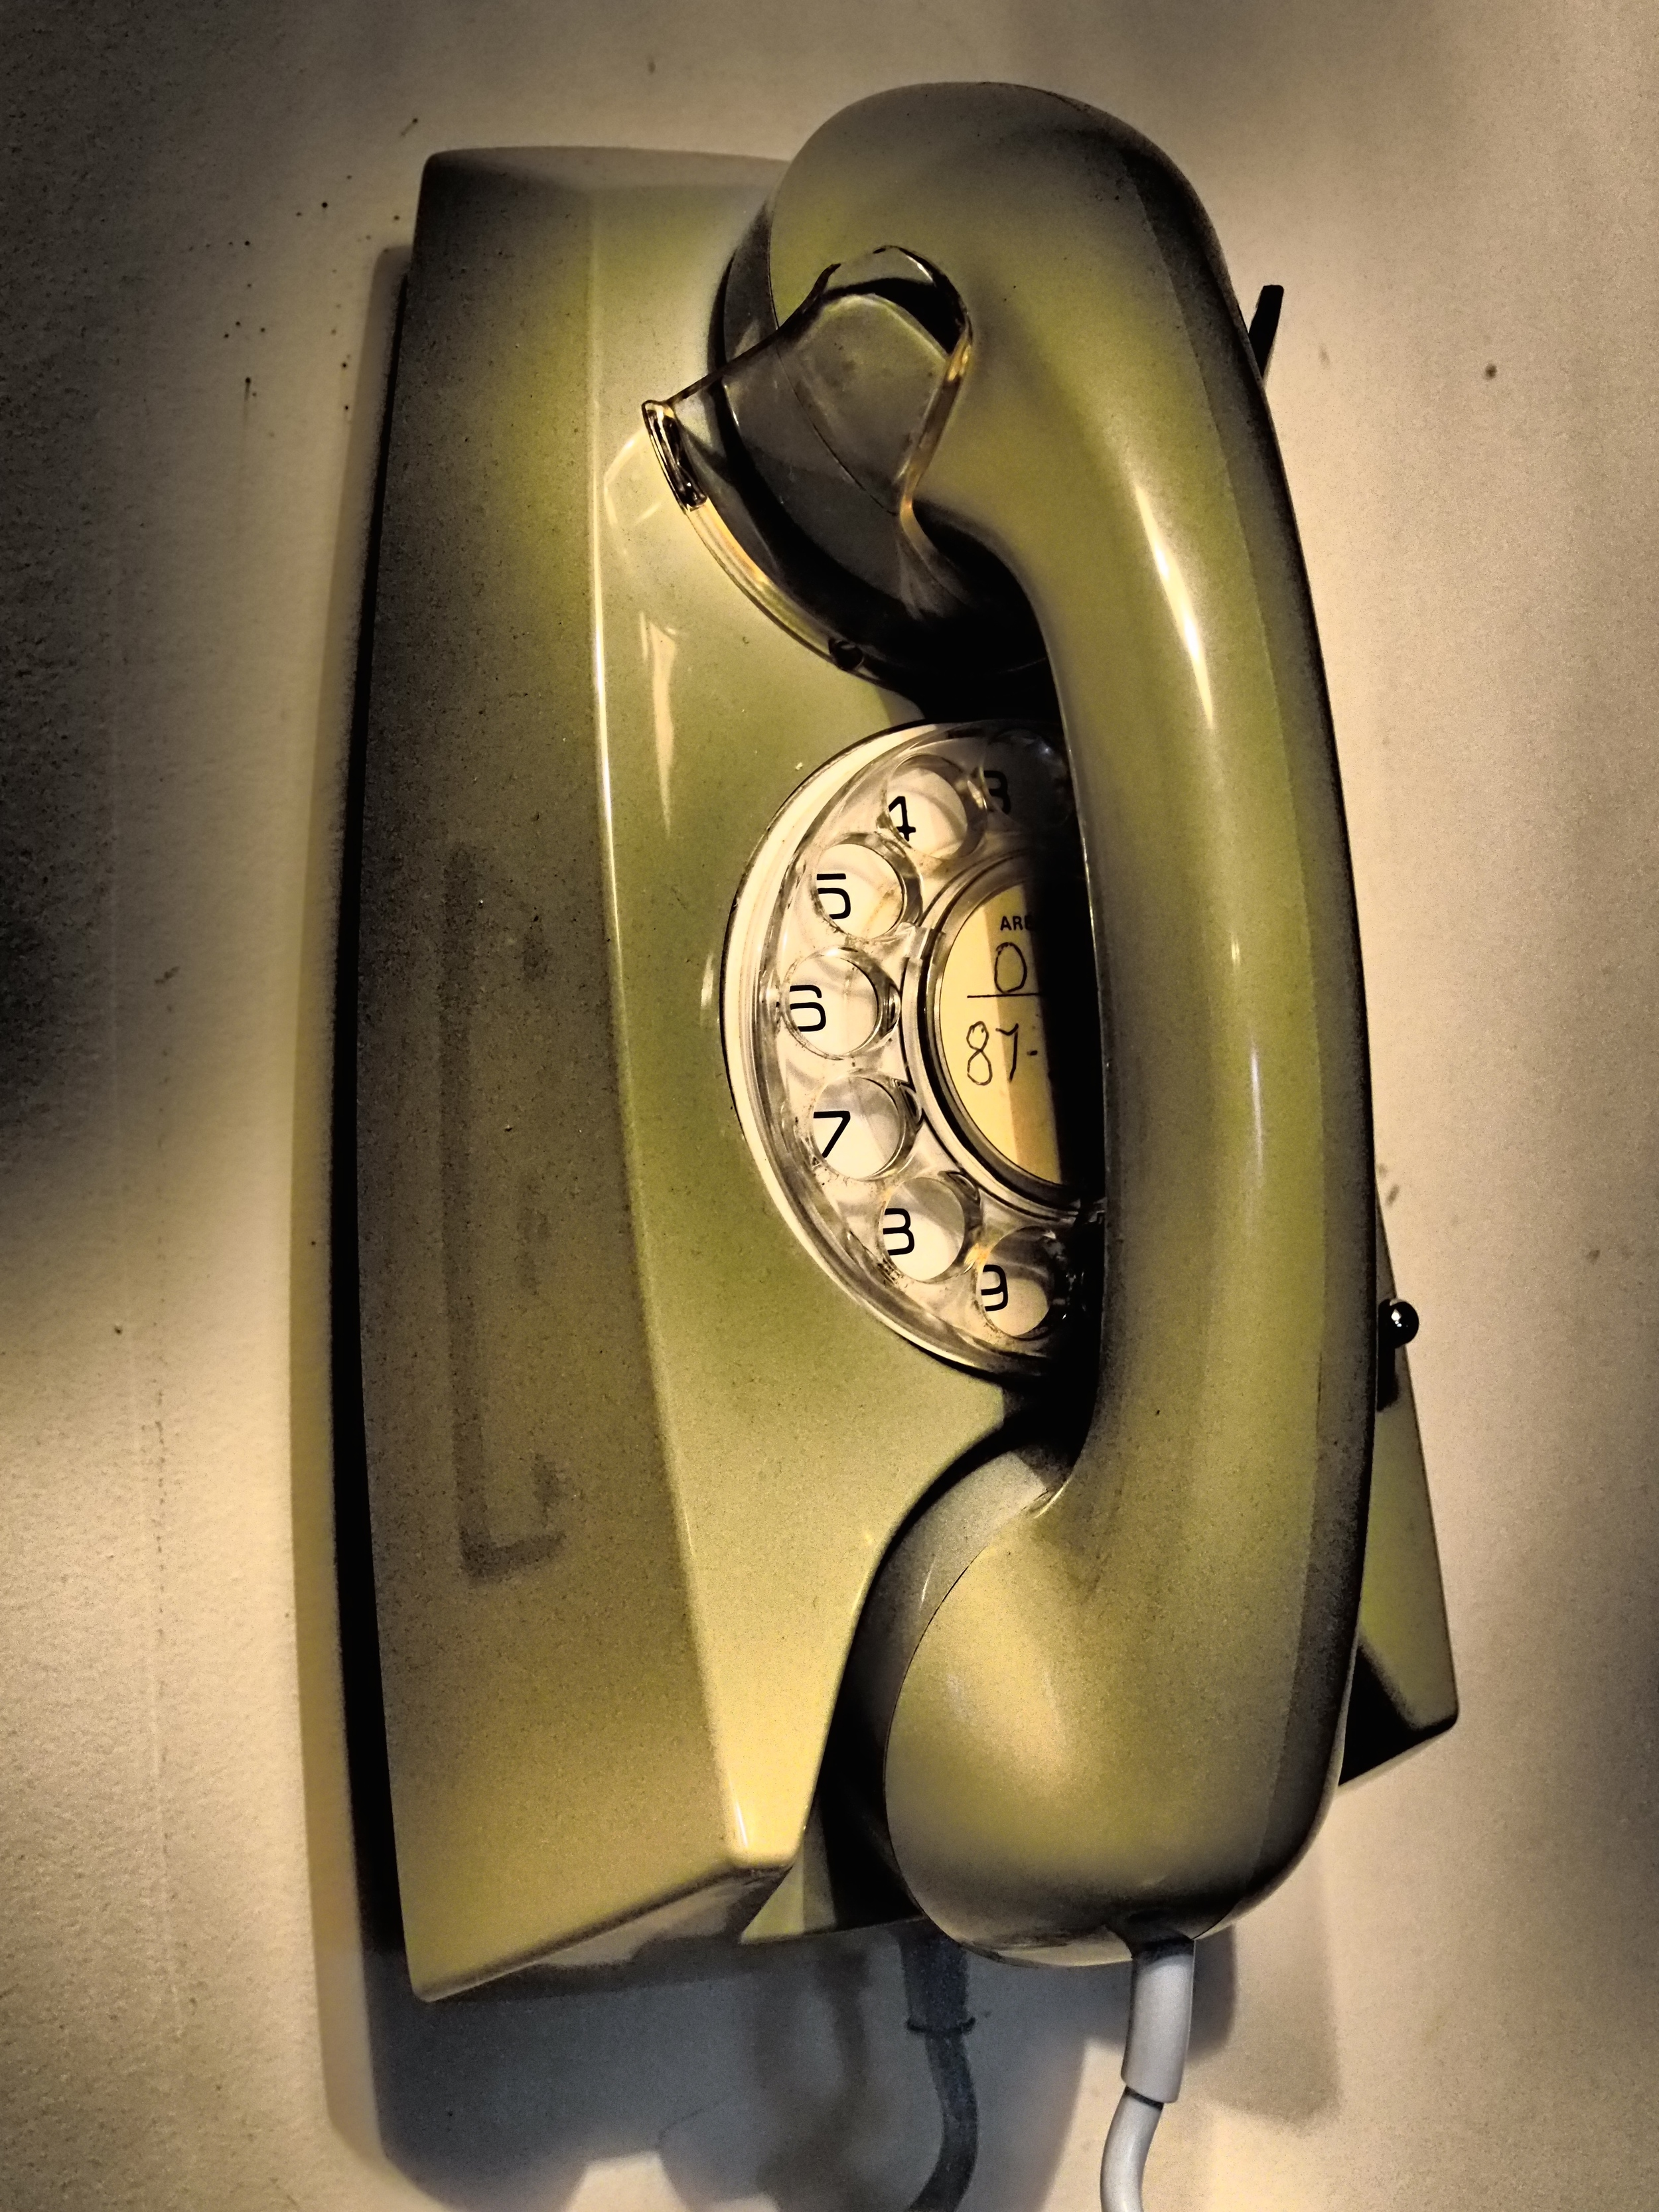 Old-fashioned green rotary telephone hanging from wall.